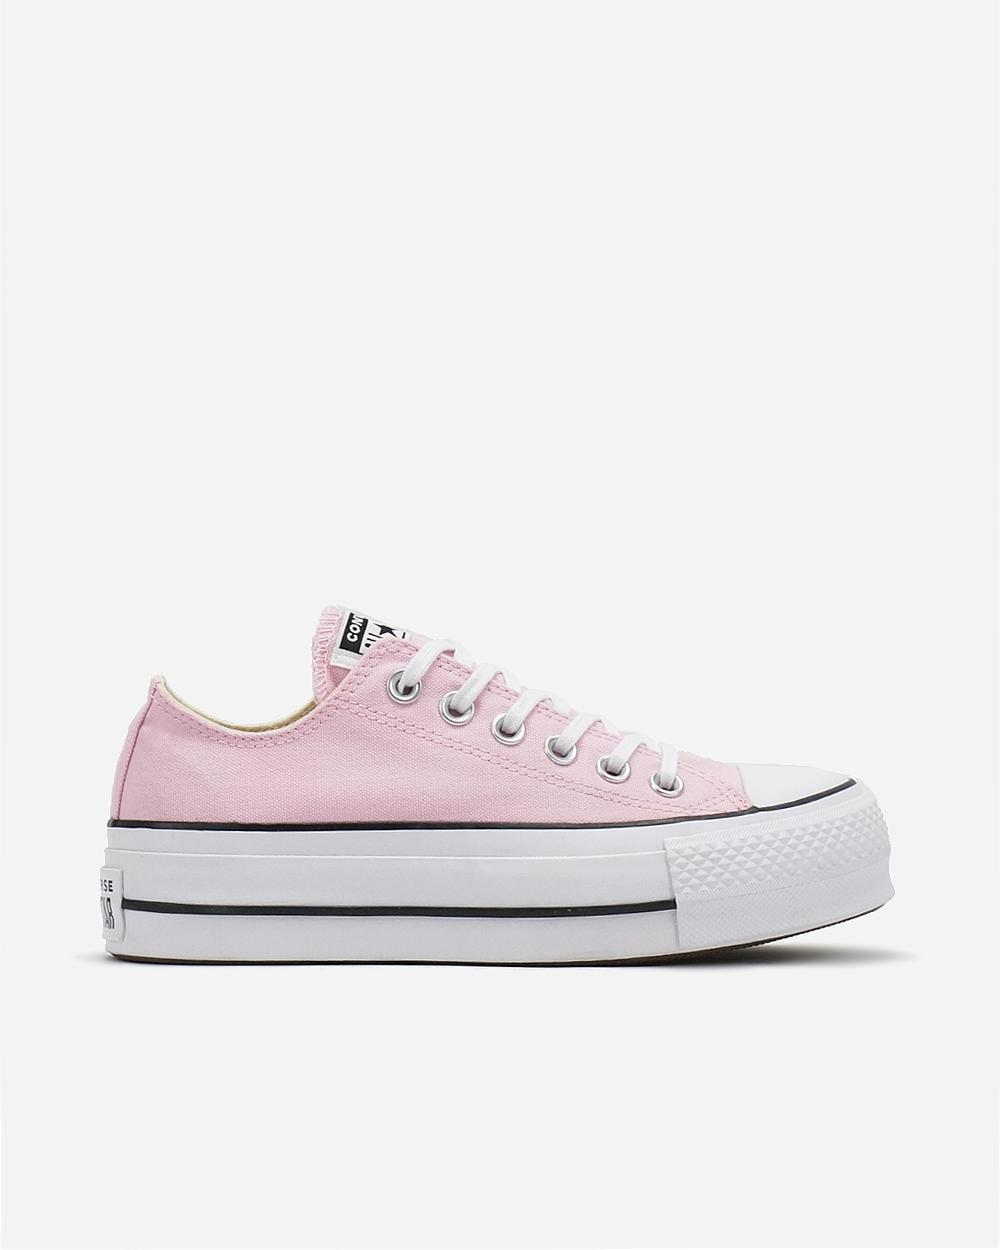 clearance special promotion attractive style Chuck Taylor Platform Canvas Low Cherry Blossom